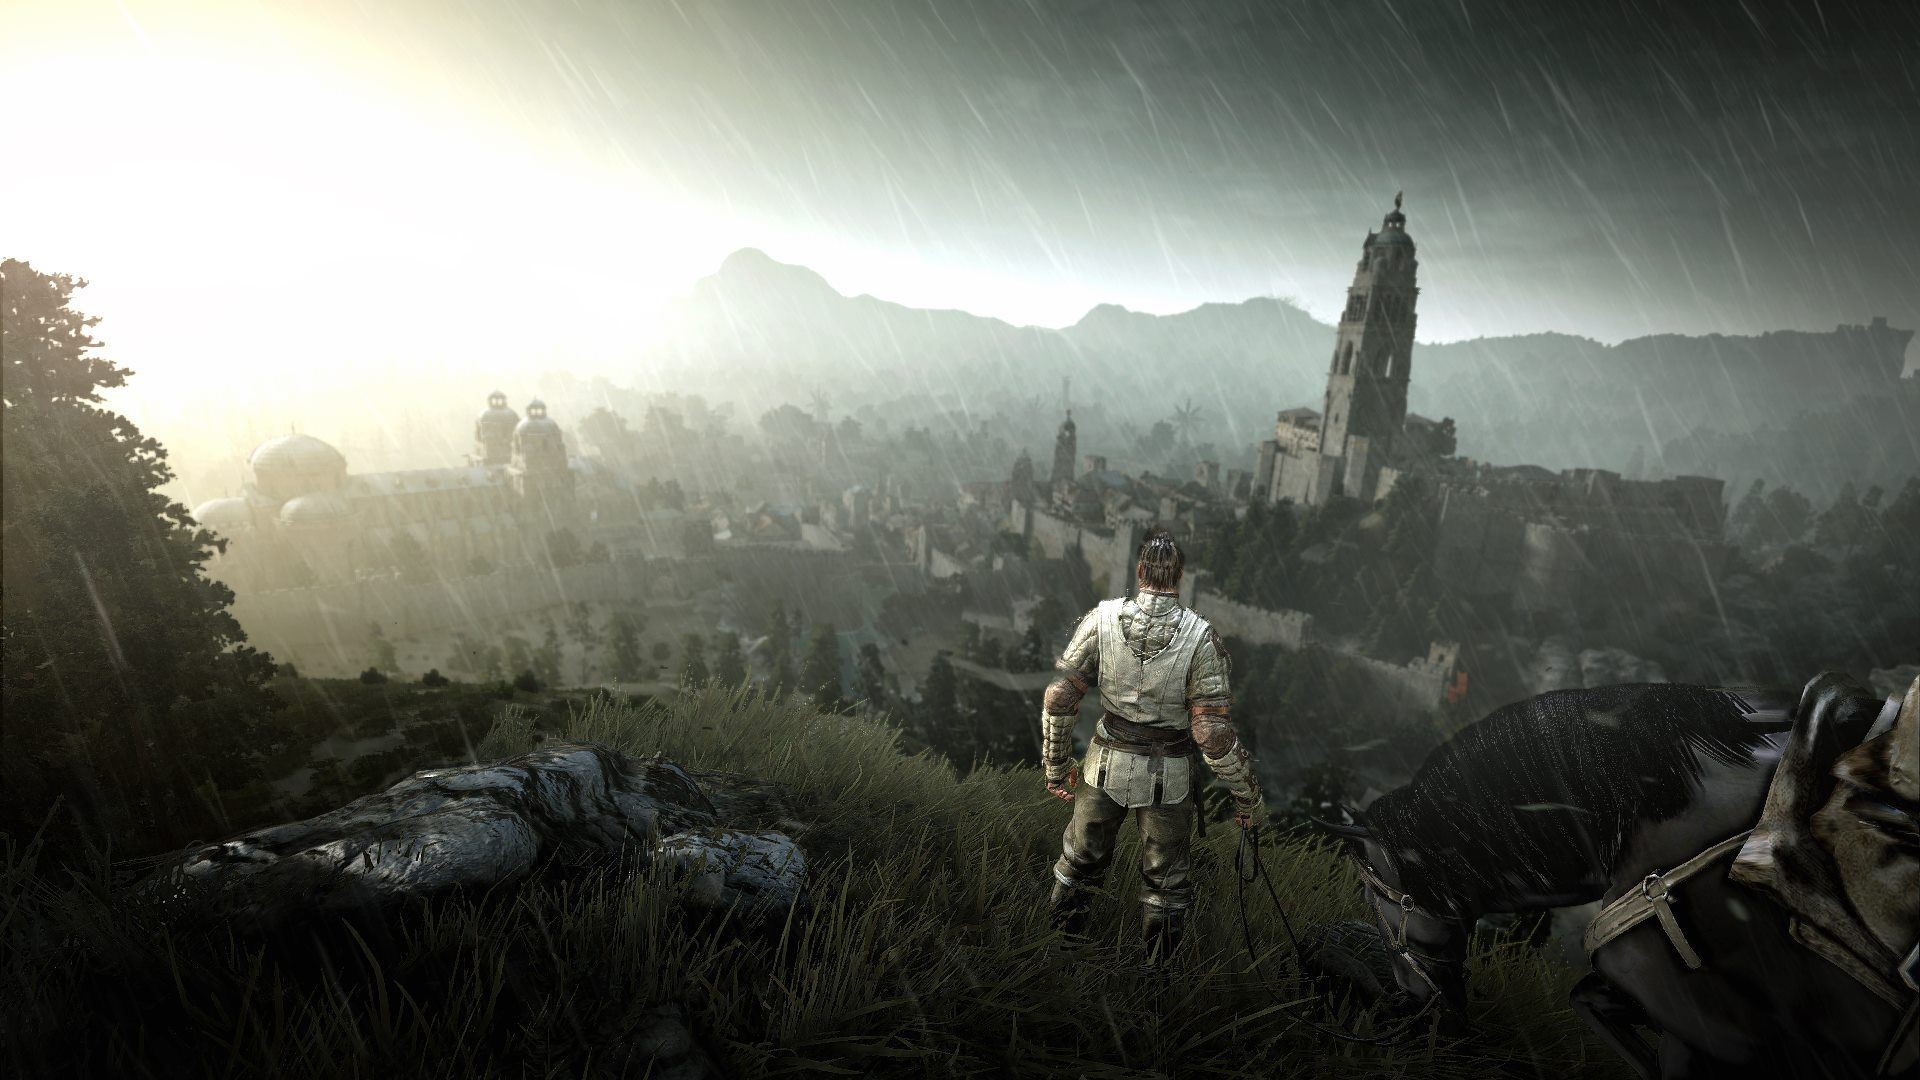 Black Desert Online Graphics RPG MMORPG next Gen visually appealing games like World of Warcraft